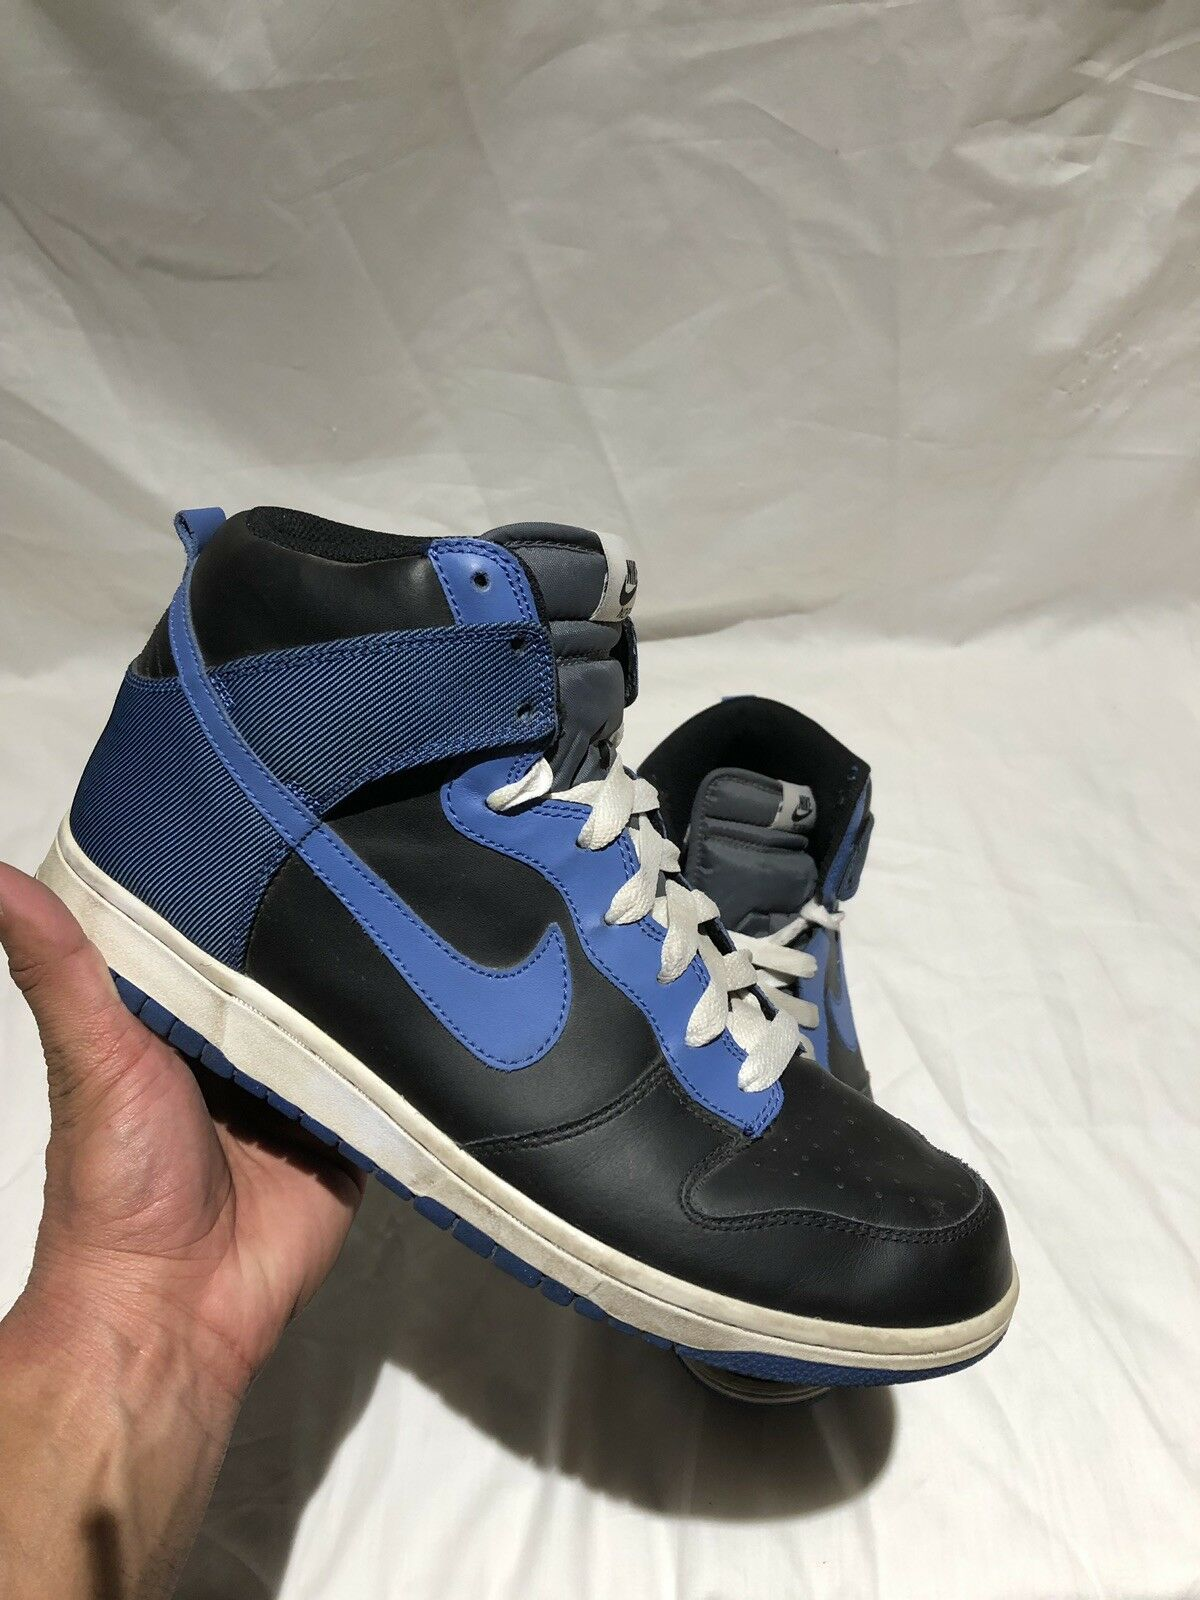 Nike North Dunks blueee 11 Jordan Style 1s